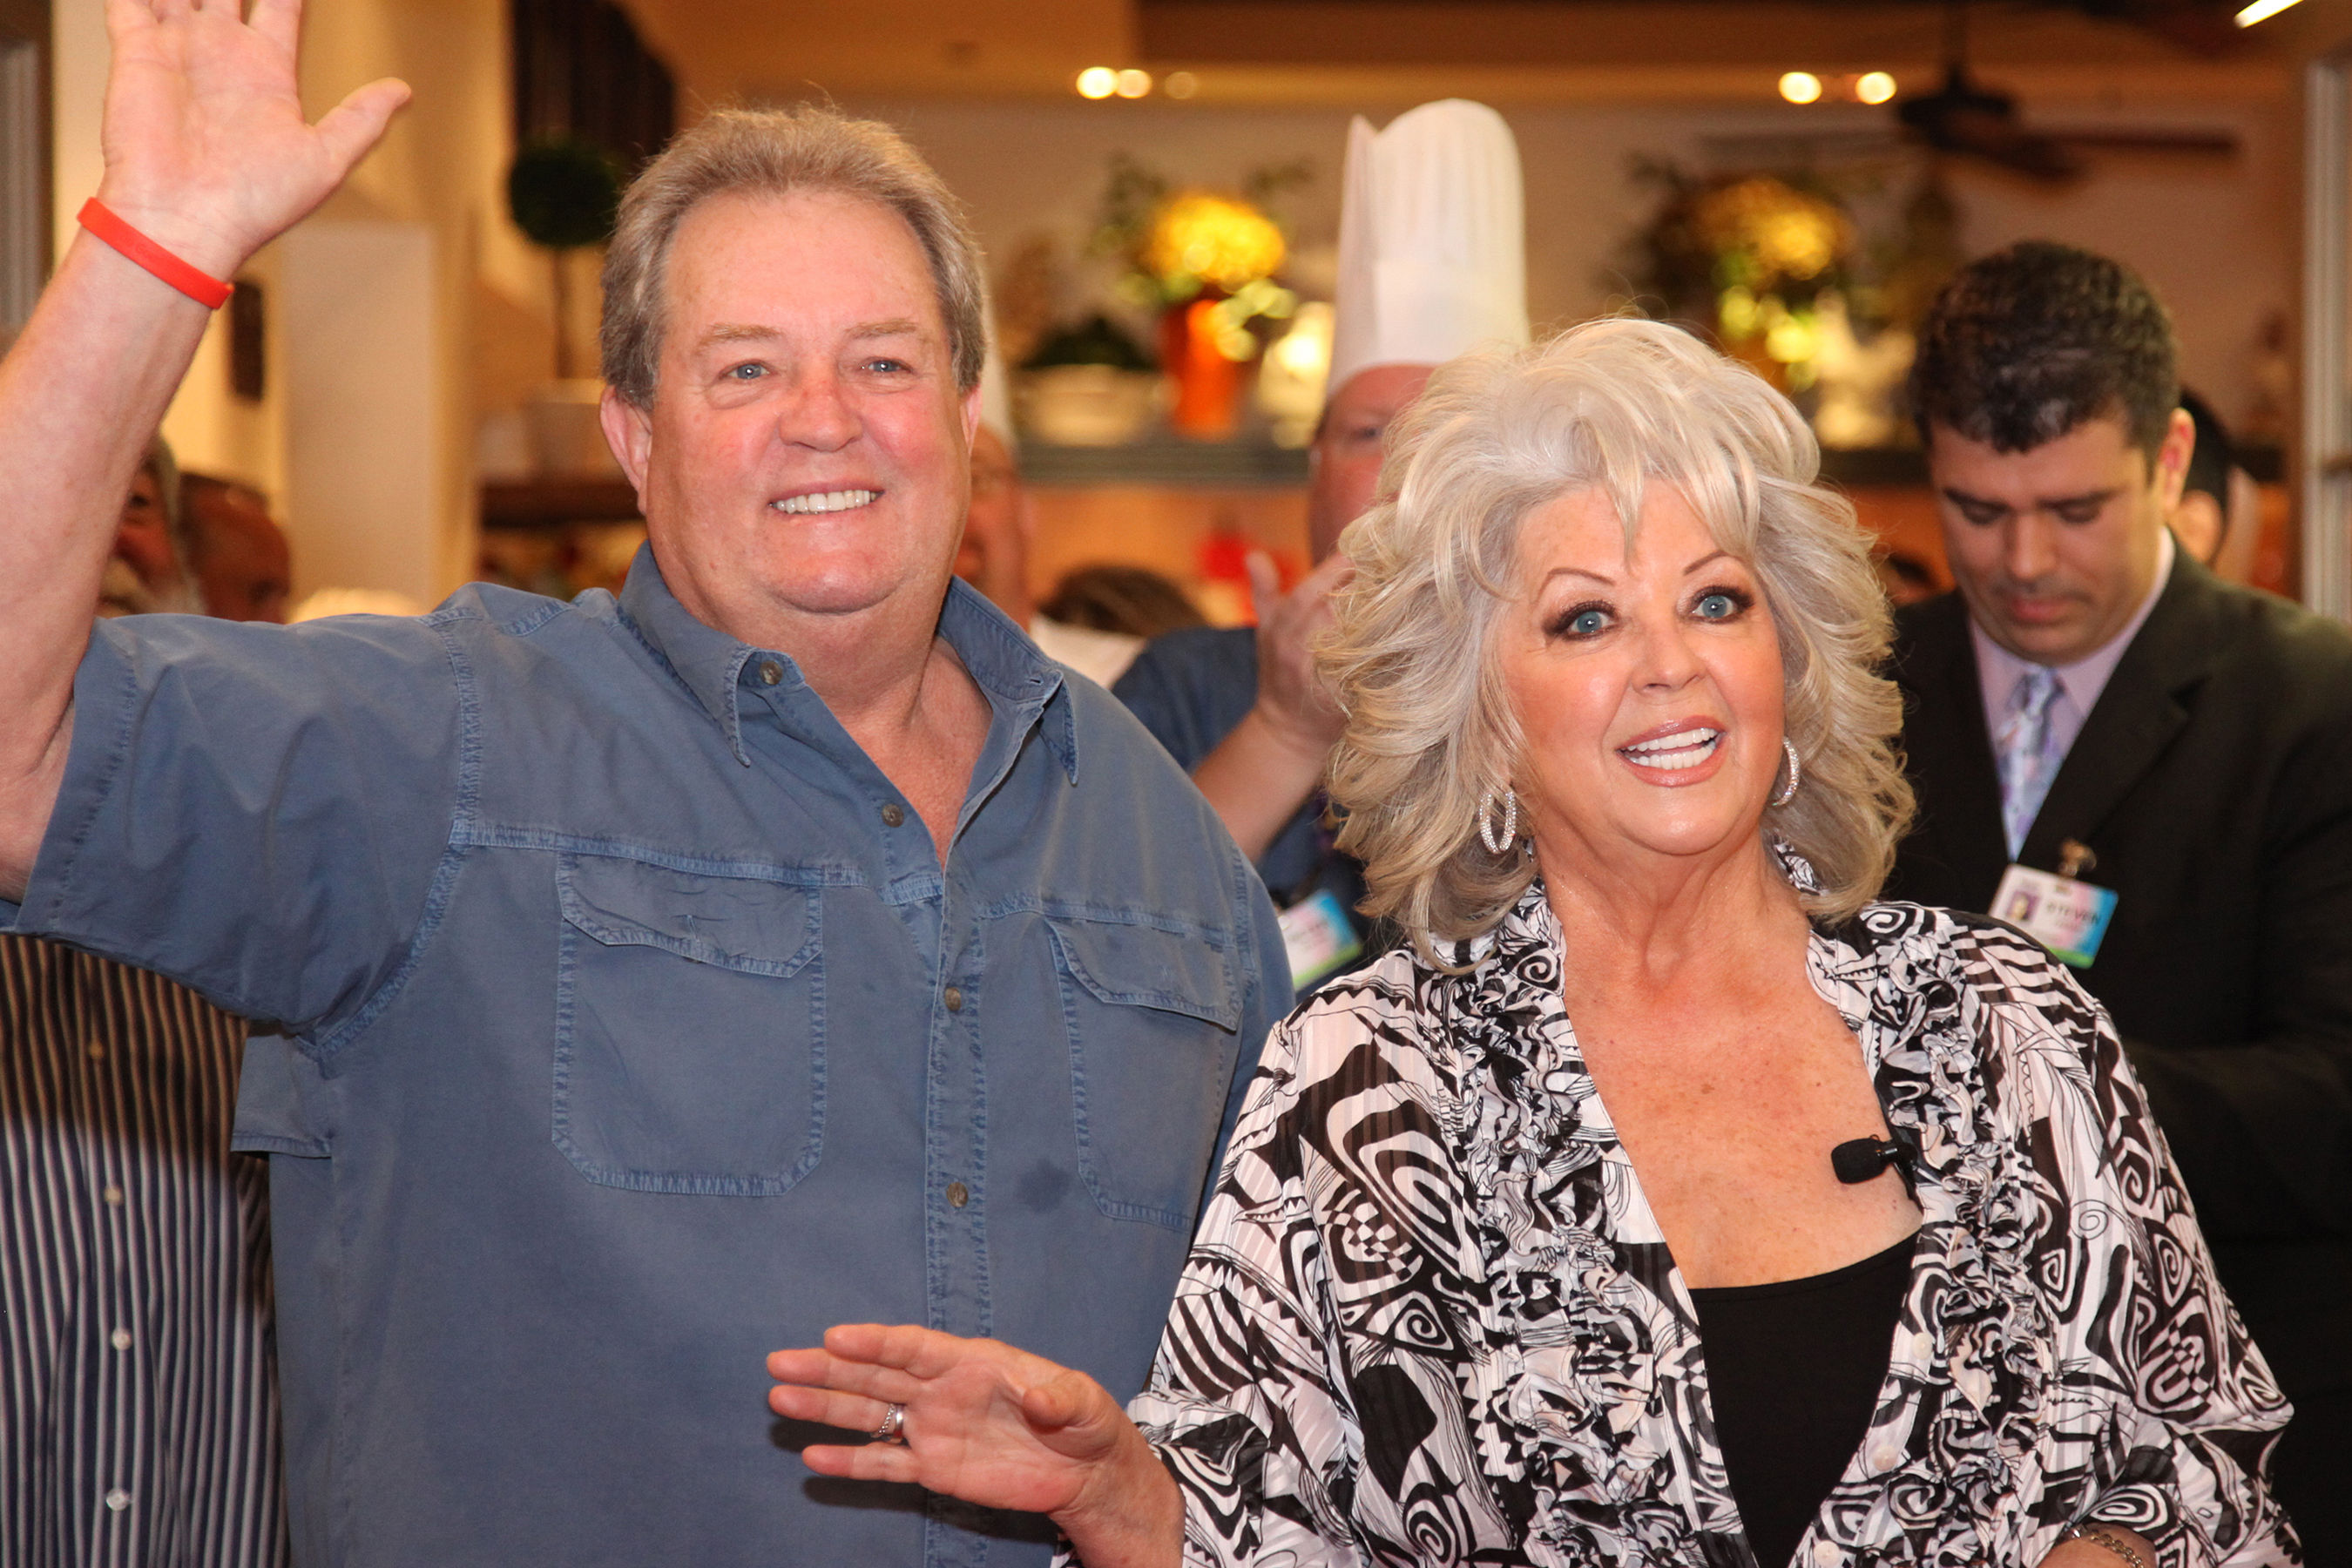 Paula Deen's Brother Earl 'Bubba' Hiers Dies at 65: 'We Will Miss Him Dearly'